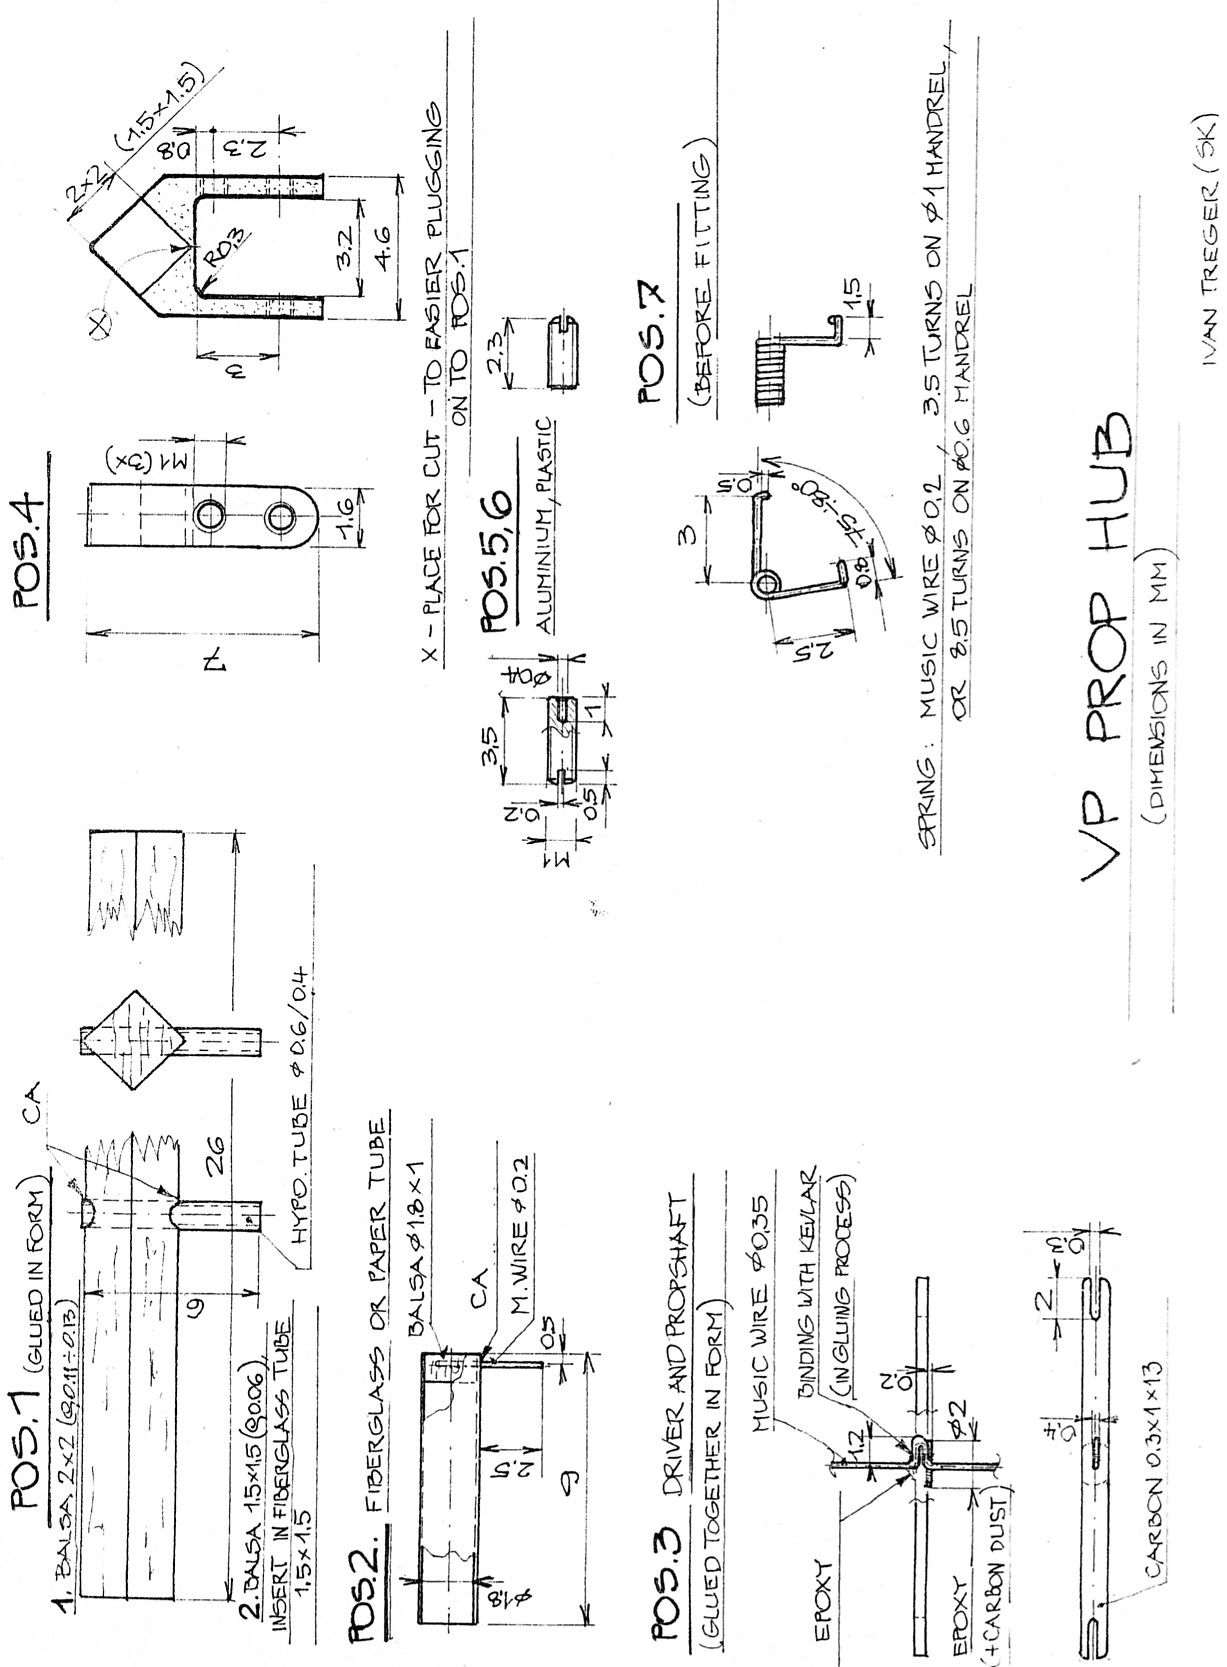 Plan Of Ivan Treger S 0 6 Gram Rubber F1d Variable Pitch Propeller Hub Page 2